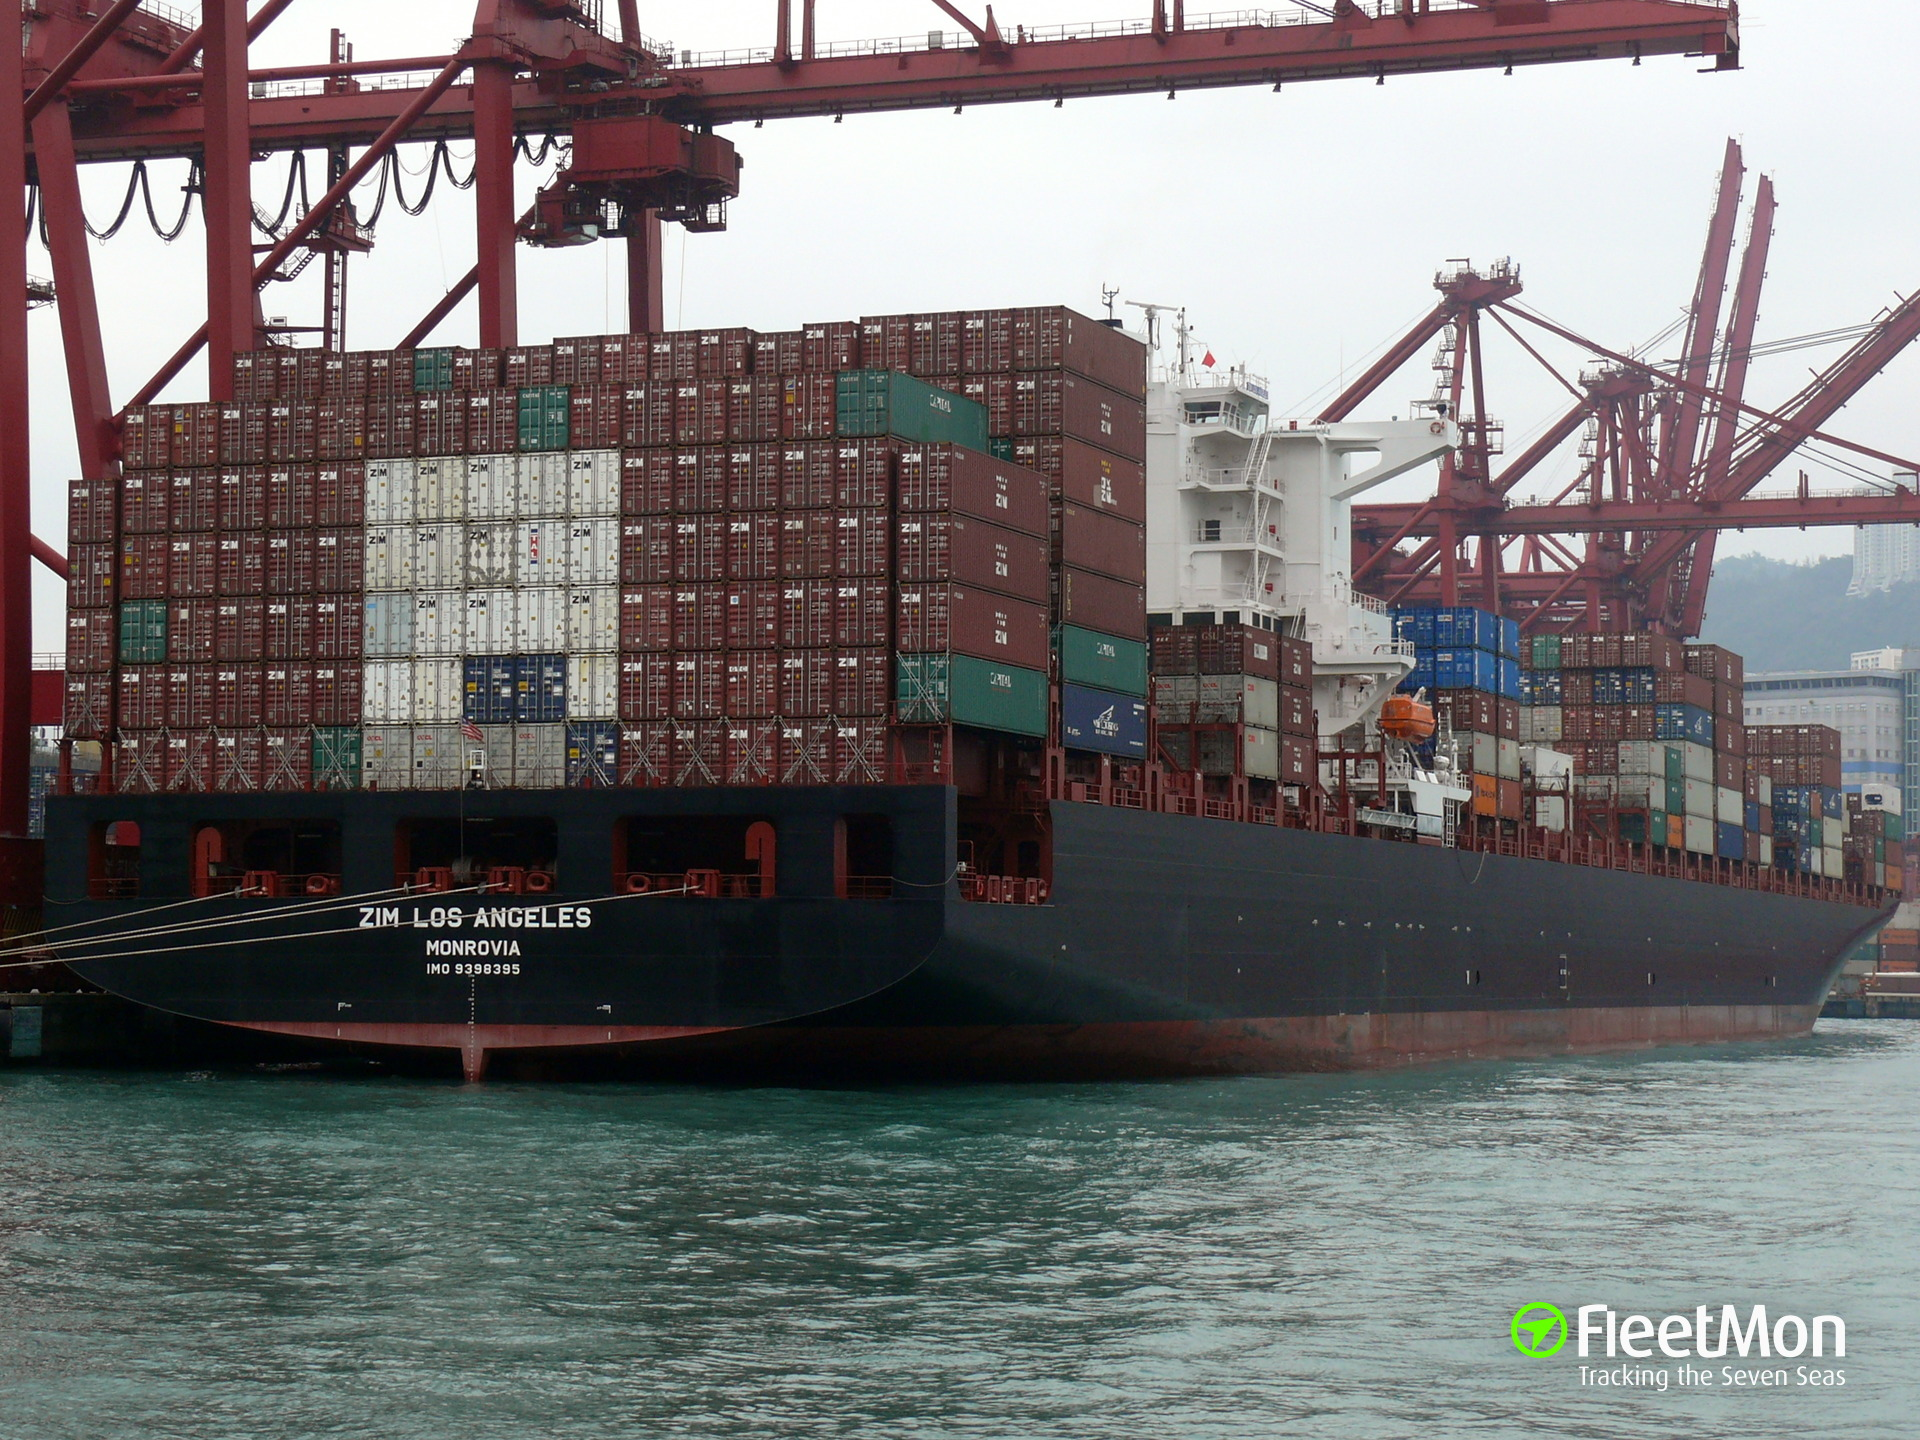 ZIM LOS ANGELES (Container ship) IMO 9398395